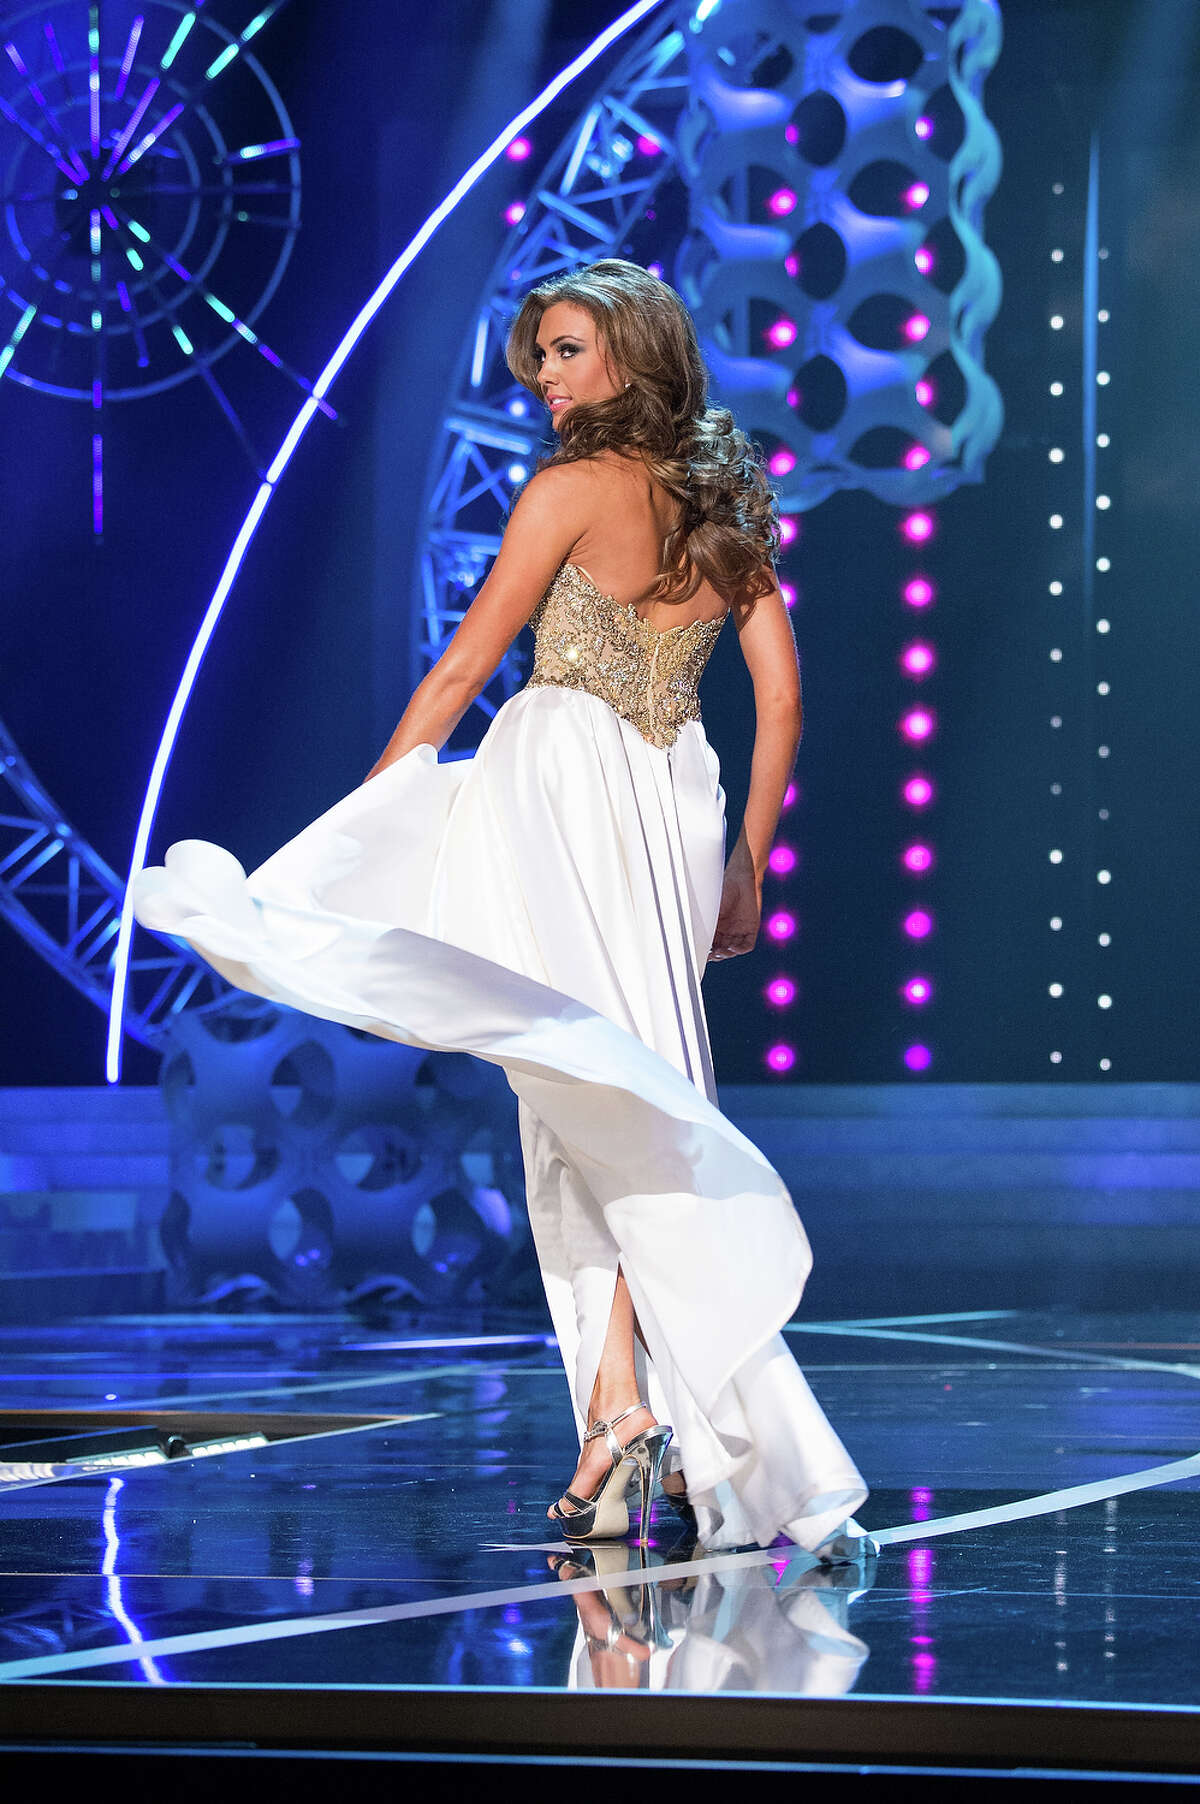 Miss Connecticut USA 2013, Erin Brady, competes in her evening gown during the 2013 MISS USA Competition at PH Live in Las Vegas, Nevada on Sunday June 16, 2013. She was competing for the title of Miss USA 2013, the coveted Miss USA Diamond Nexus Crown, and the chance to represent the USA at the 2013 MISS UNIVERSE Competition in November. HO/Miss Universe Organization L.P., LLLP.